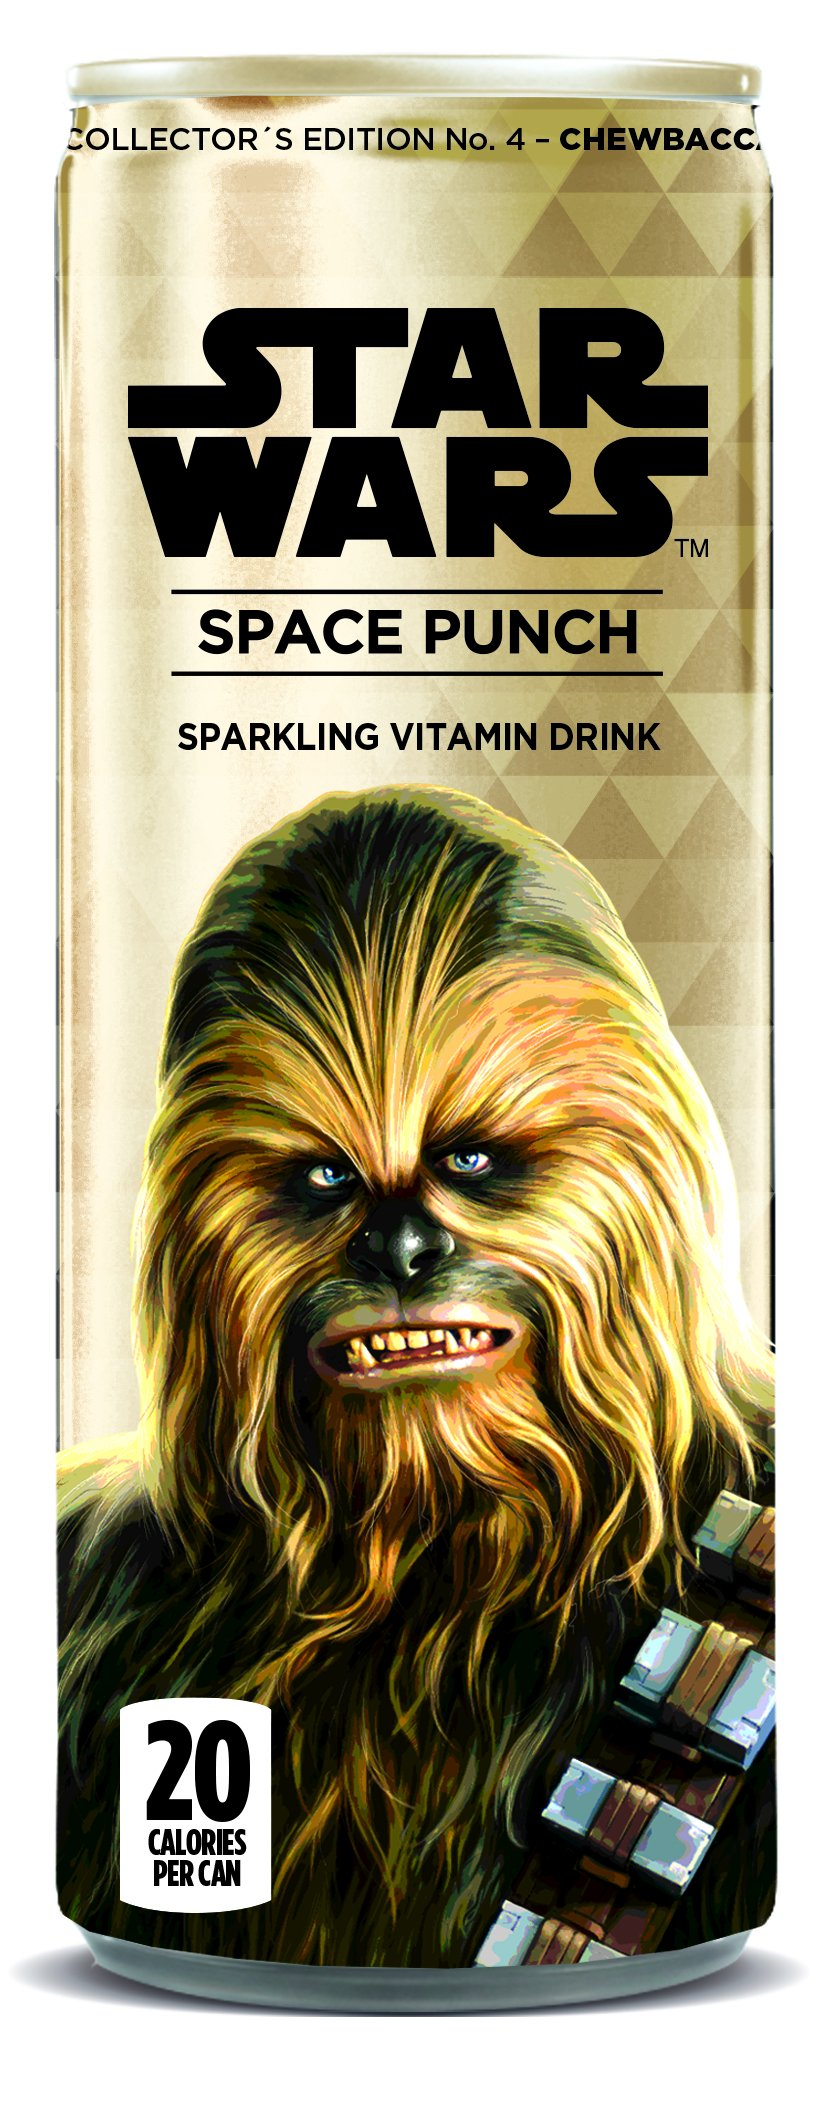 Star Wars Space Punch Sparkling Vitamin Drink, Collectors Edition No.4-Chewbacca, 12 Oz. Cans (Pack of 12)